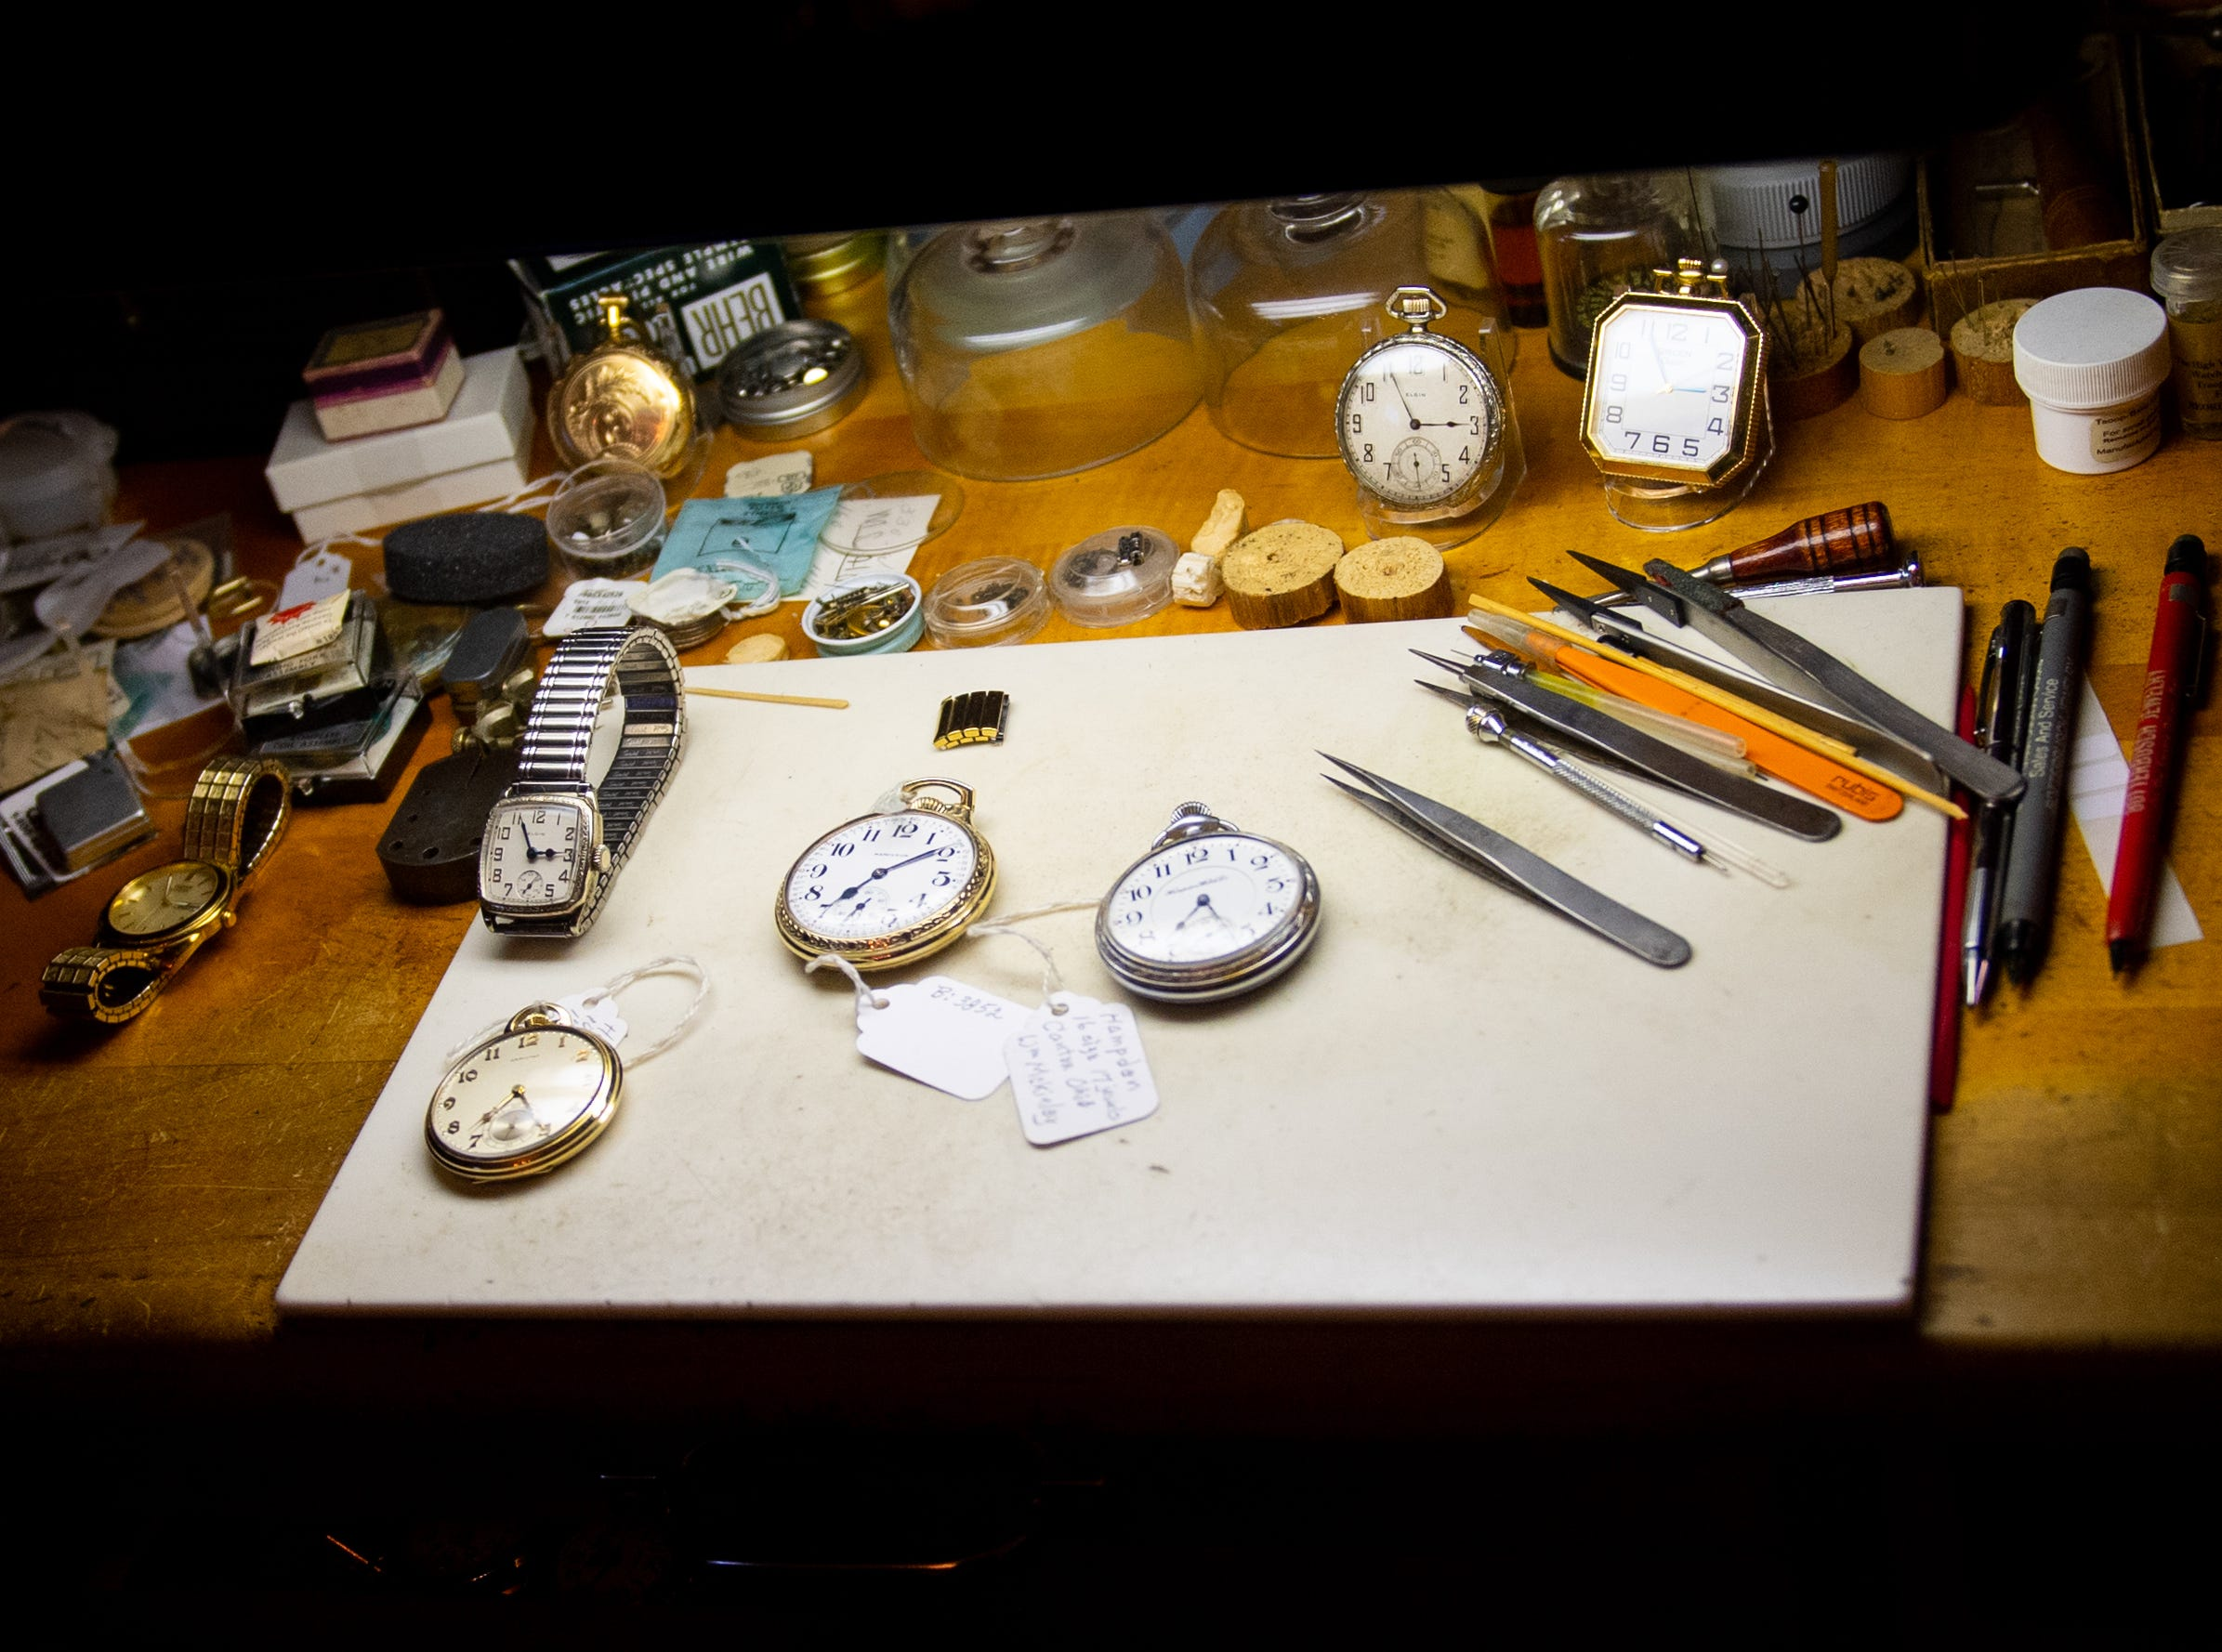 Ronald Botterbusch's work area is filled with watches and special tools that he can work on them with, January 30, 2019.